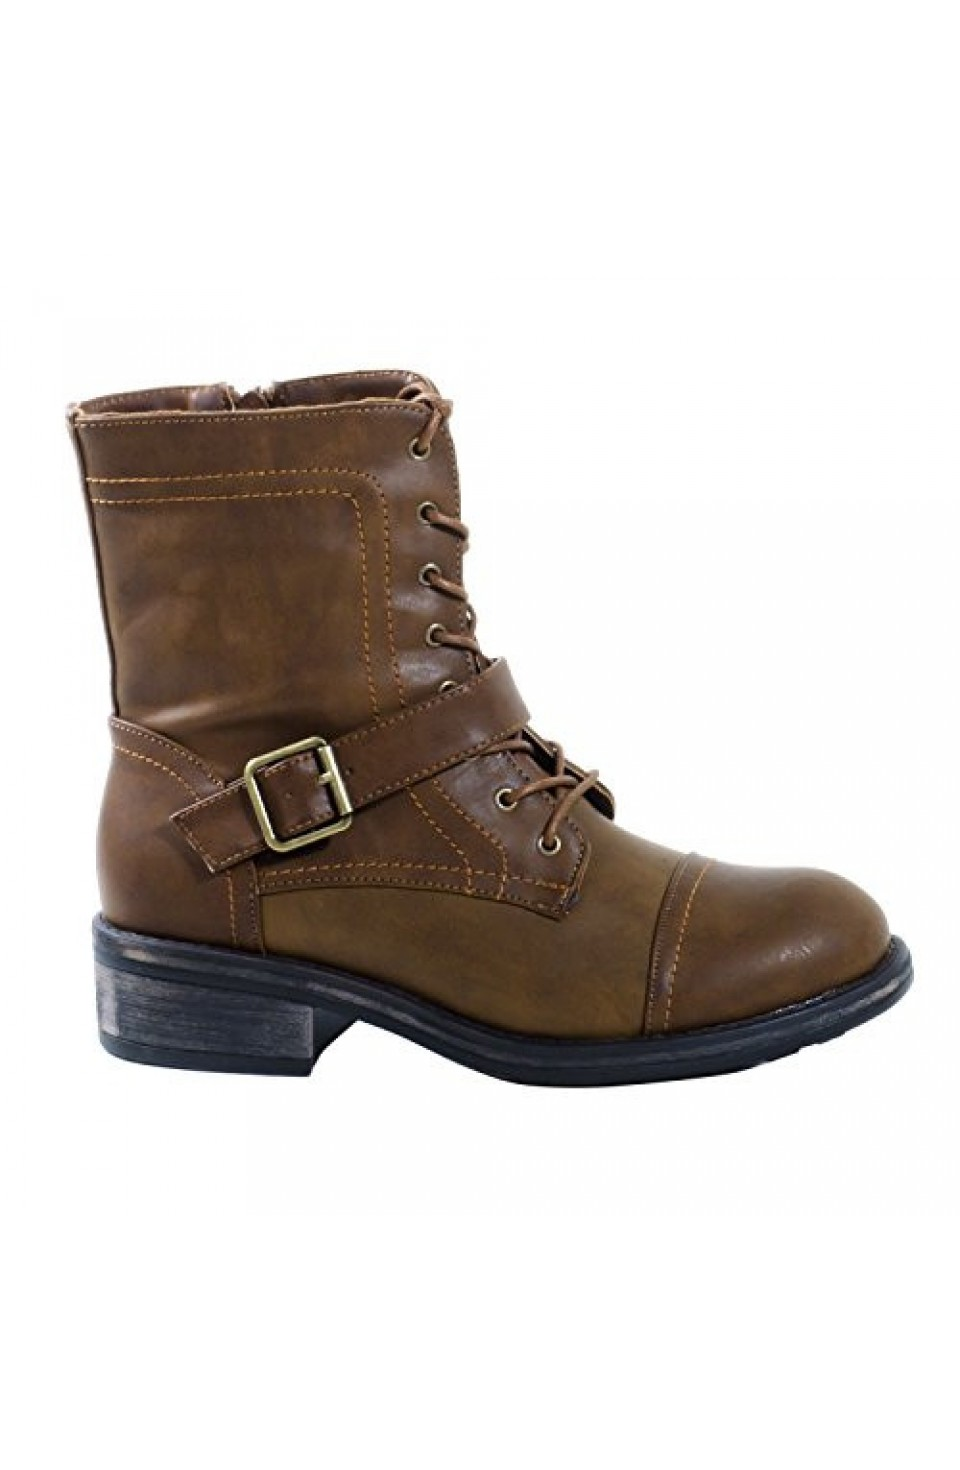 Women's Brown Manmade Helenna Ankle Boot with Buckle Strap